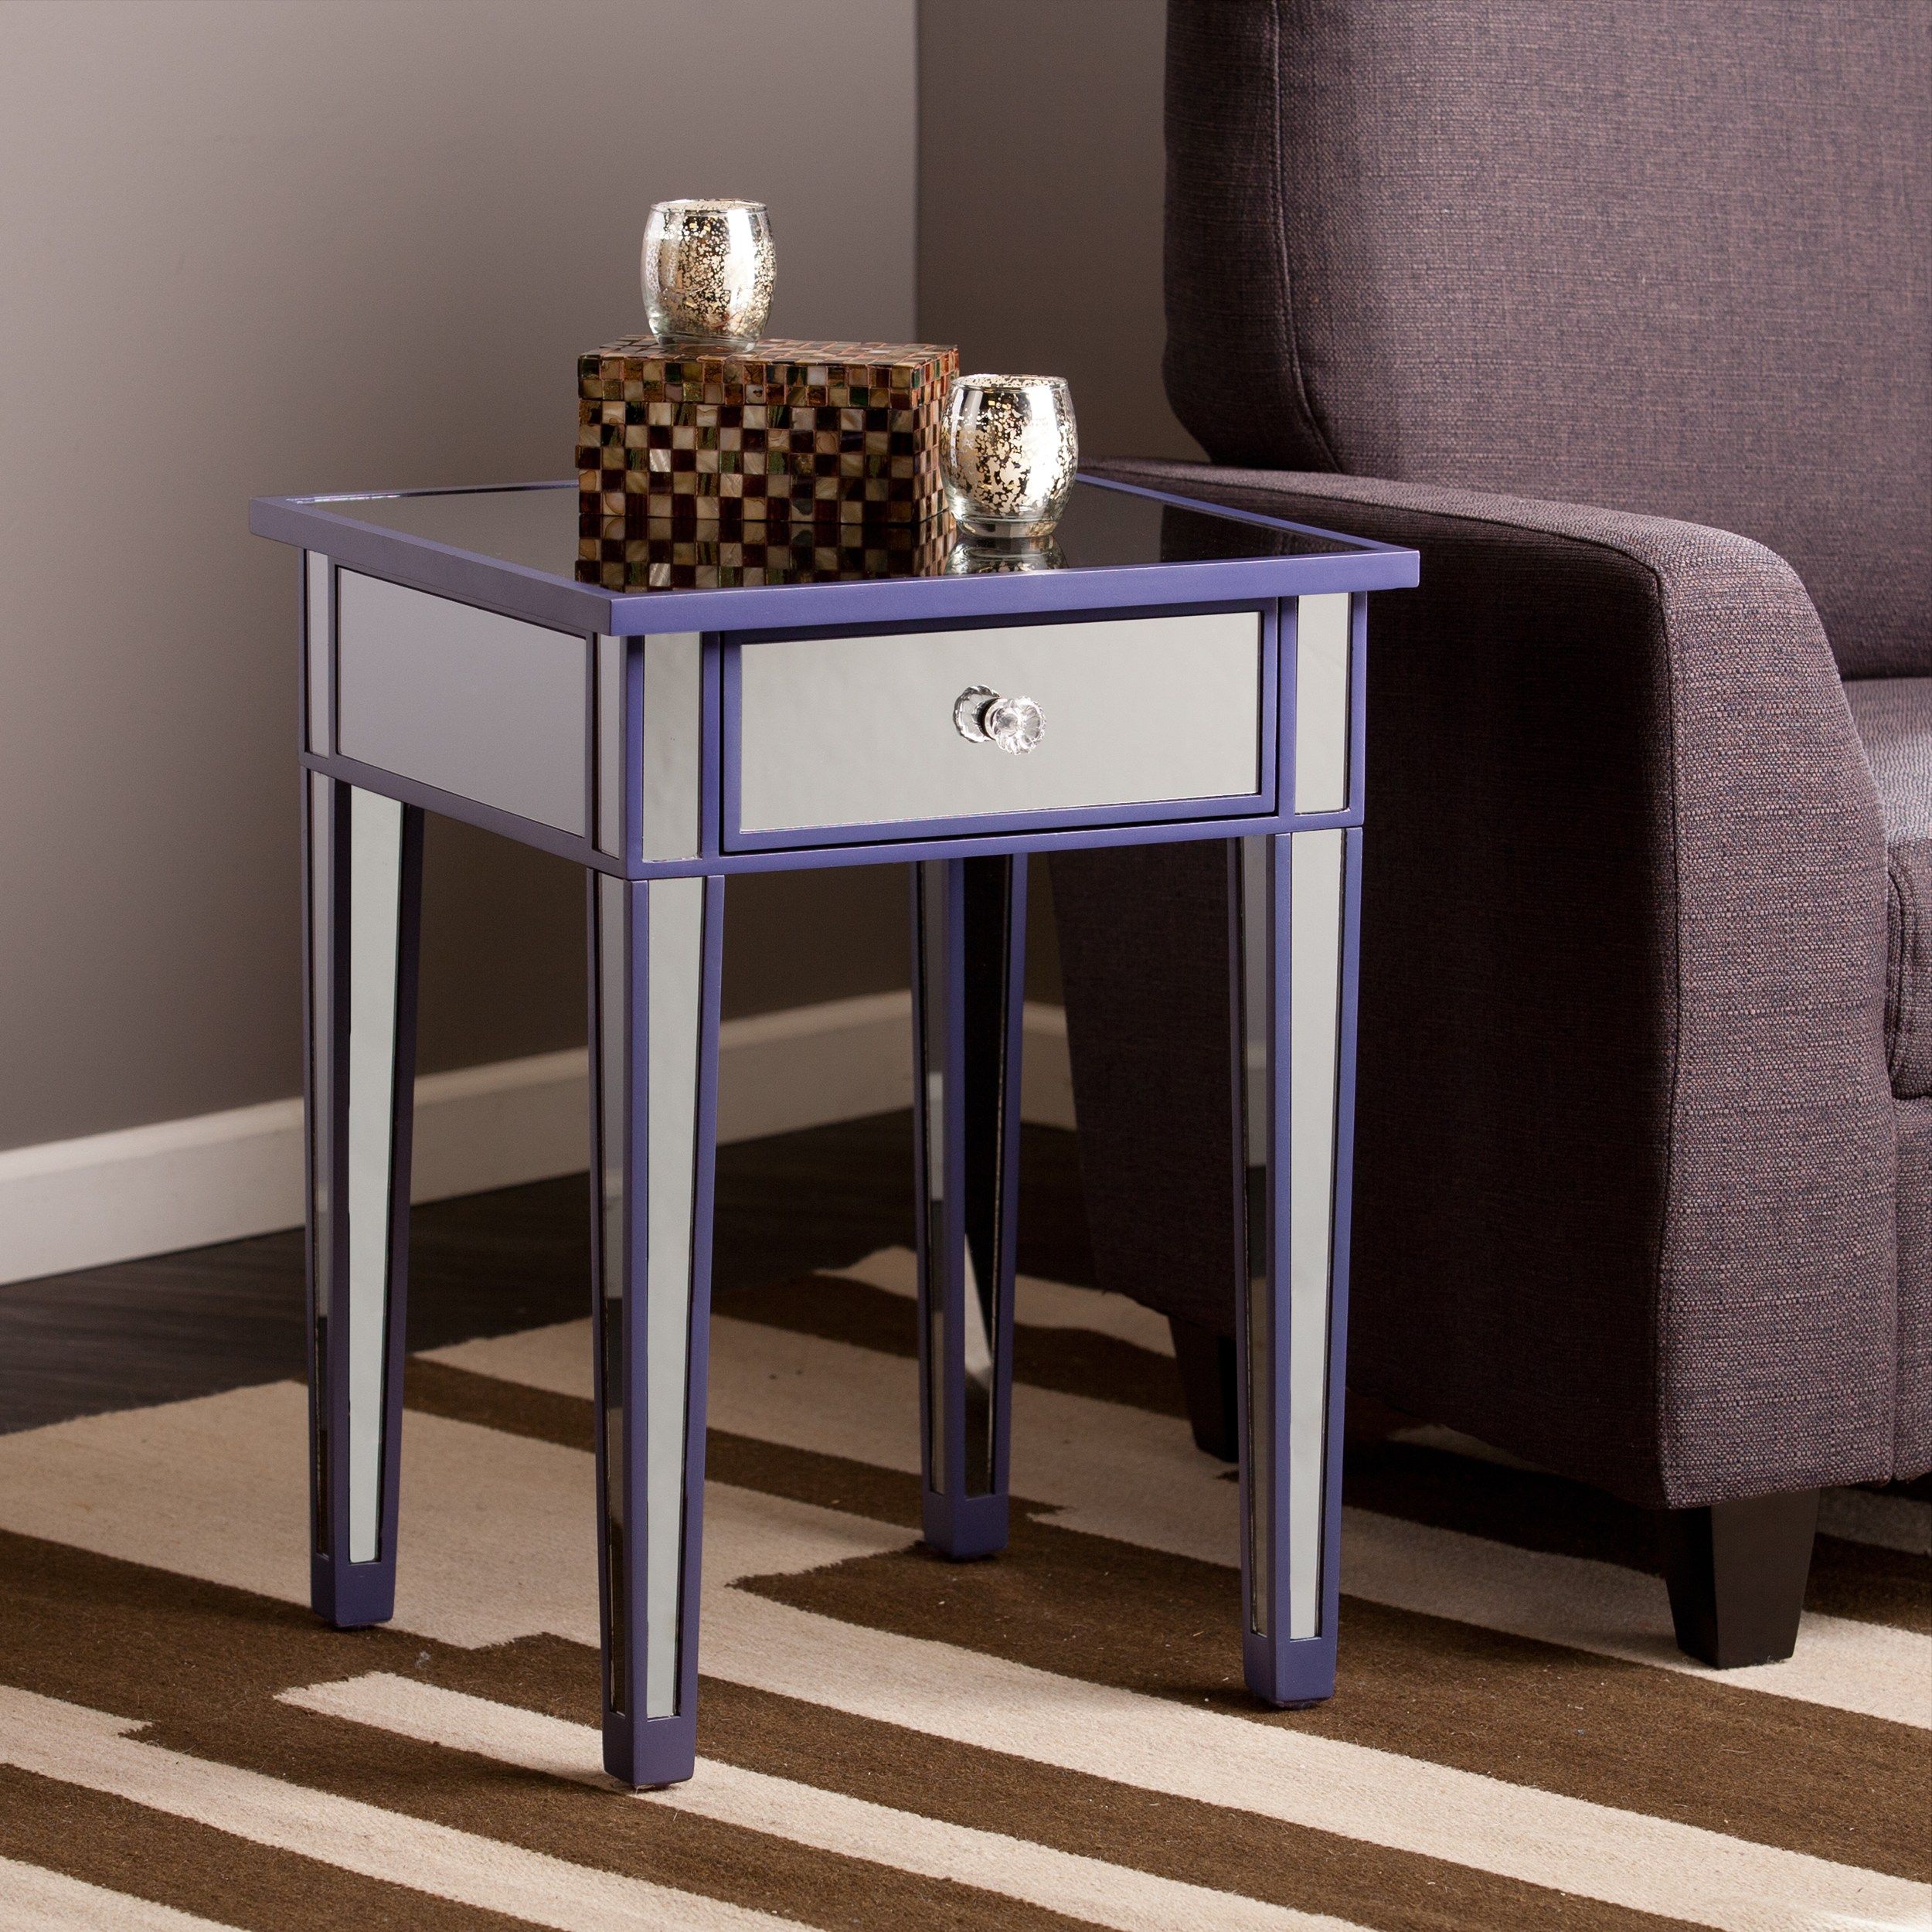 harper blvd sutcliffe purple color mirror accent table free upton home tables with matching mirrors shipping today modern dressing black piece set nate berkus sheets carved wood